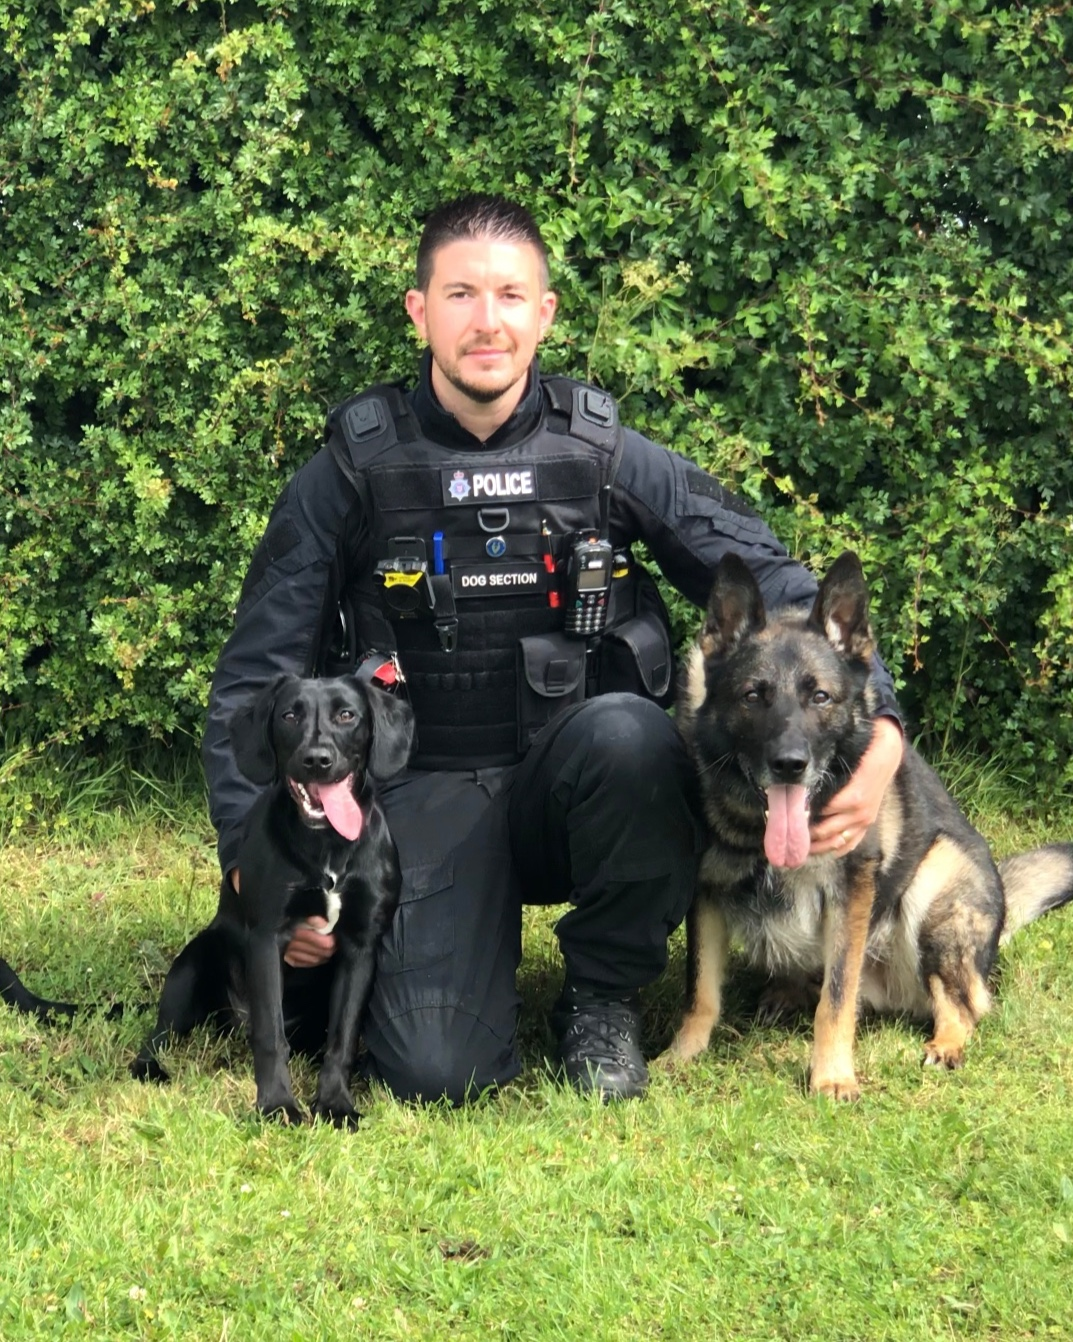 Thomas Davies - Trustee - PC Tom Davies has worked in policing since 2005 and has been an operational dog handler since 2013. He currently handles a German Shepherd called Timor, with the team specialising in firearms support. Tom is the youngest trainer within the dog section and enjoys the challenges of bringing on potential police puppies and developing existing dog teams.As a strong advocate of the dog sections work and a founding member of the fund Tom is extremely humbled to be a trustee of the Railway Dogs Benevolent Fund.